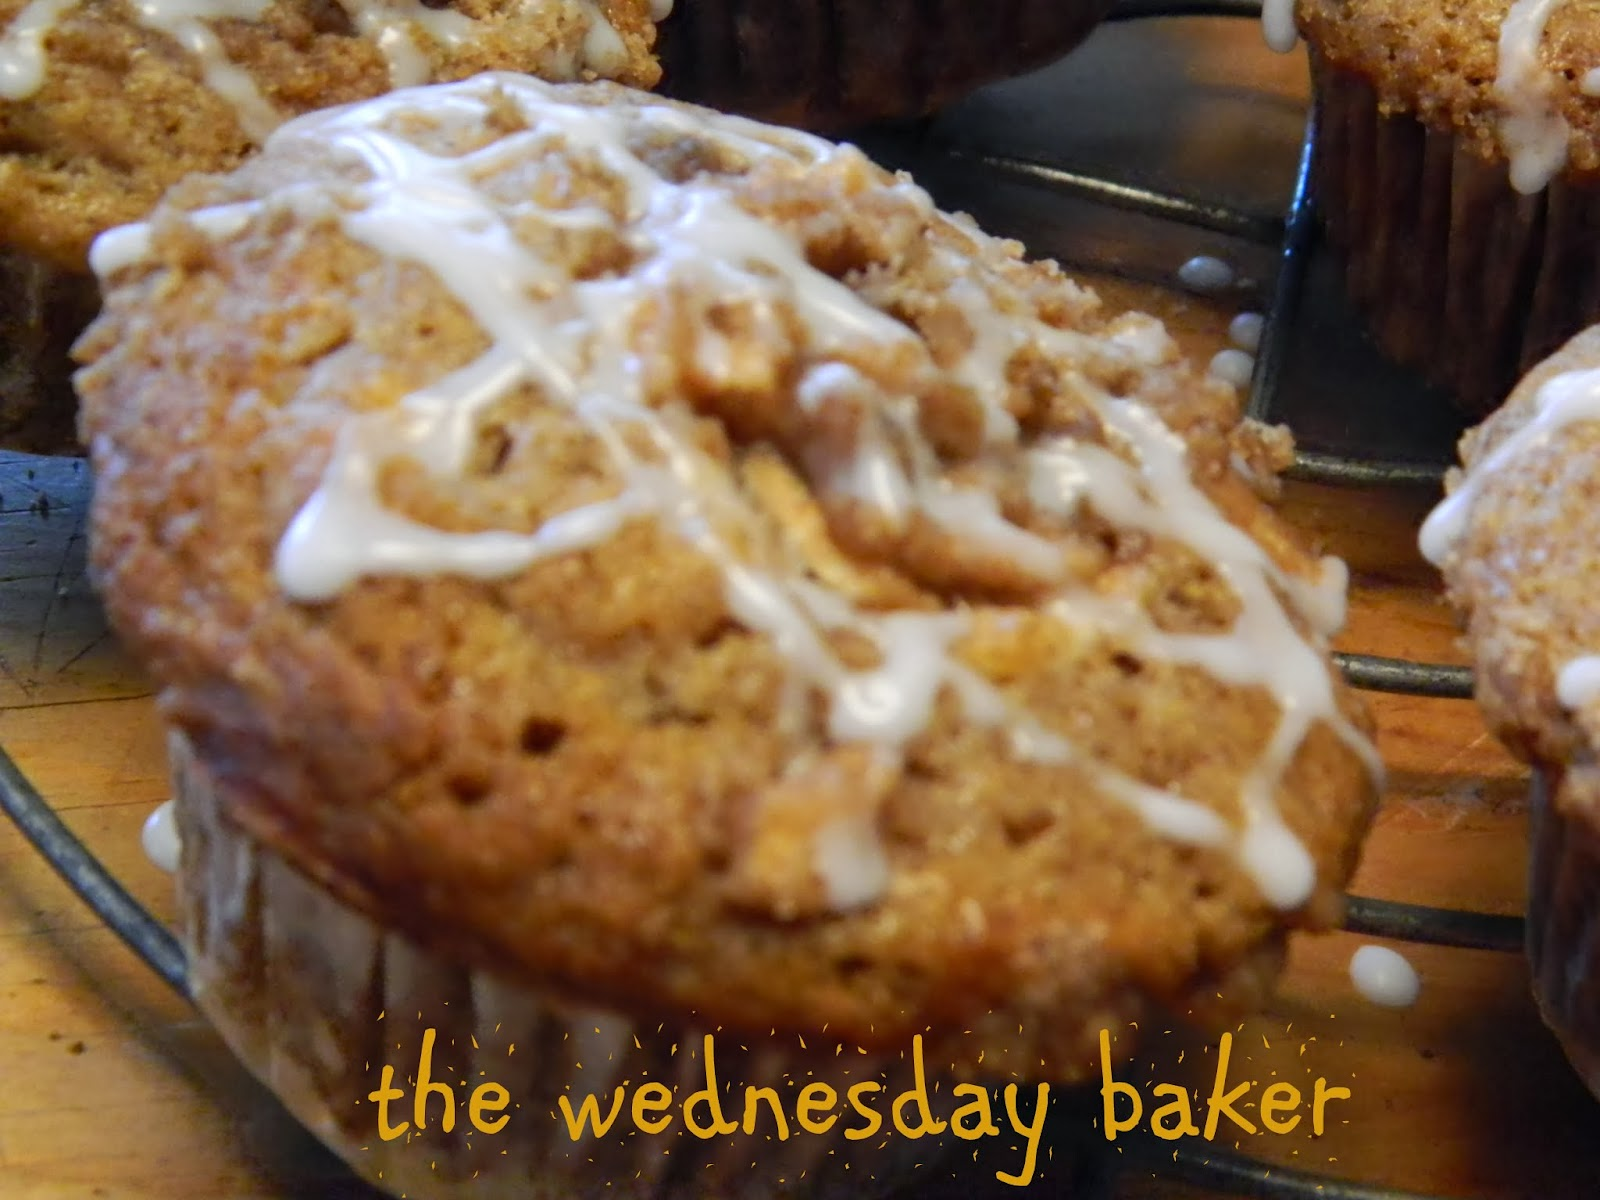 The Wednesday Baker: APPLE CINNAMON CRUMB MUFFINS